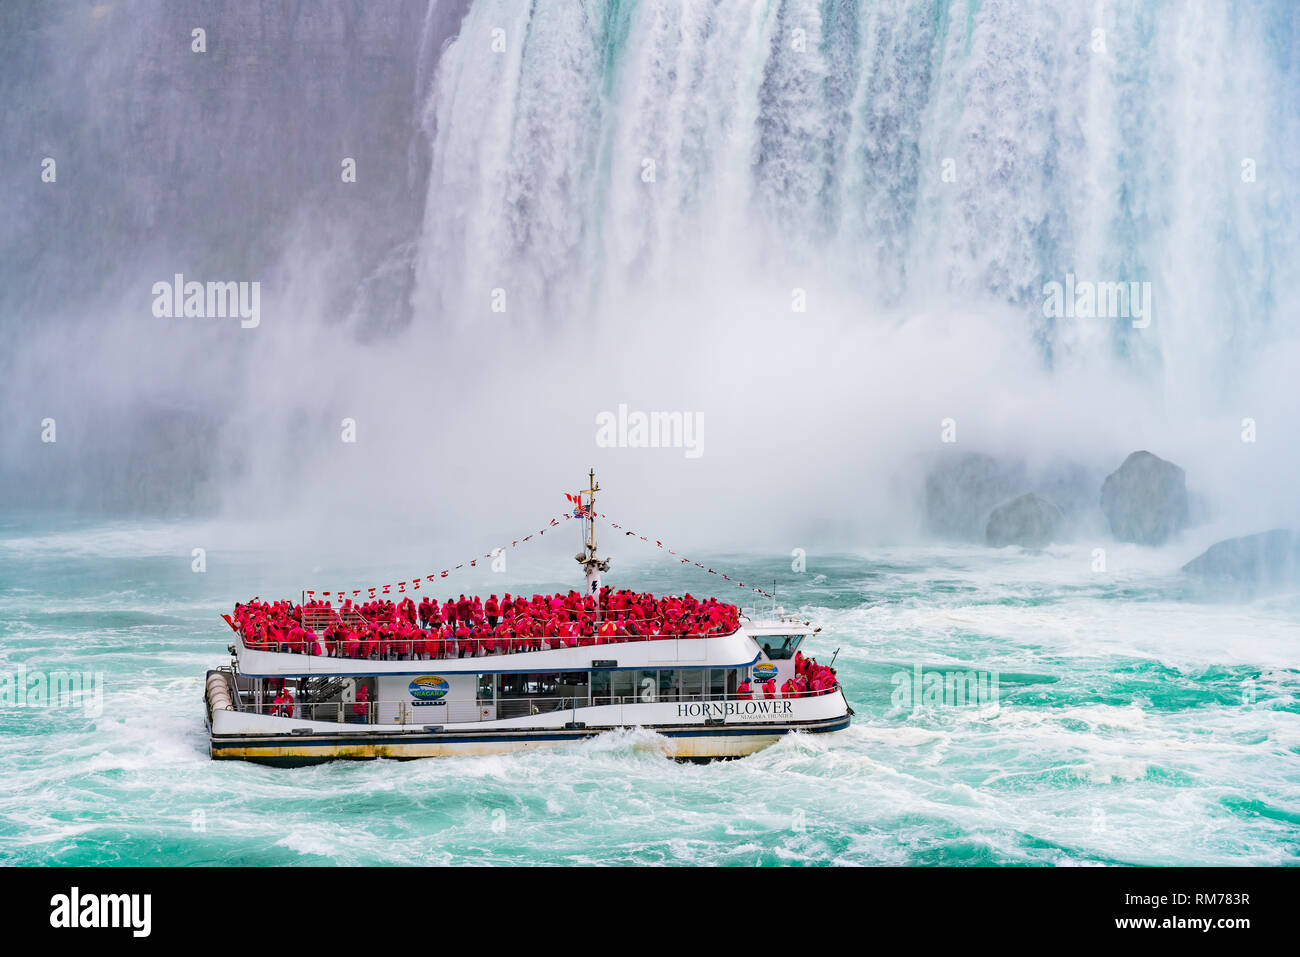 Toronto, SEP 29: Close up of the beautiful Horseshoe Fall with ship nearby on SEP 29, 2018 at Toronto, Canada Stock Photo